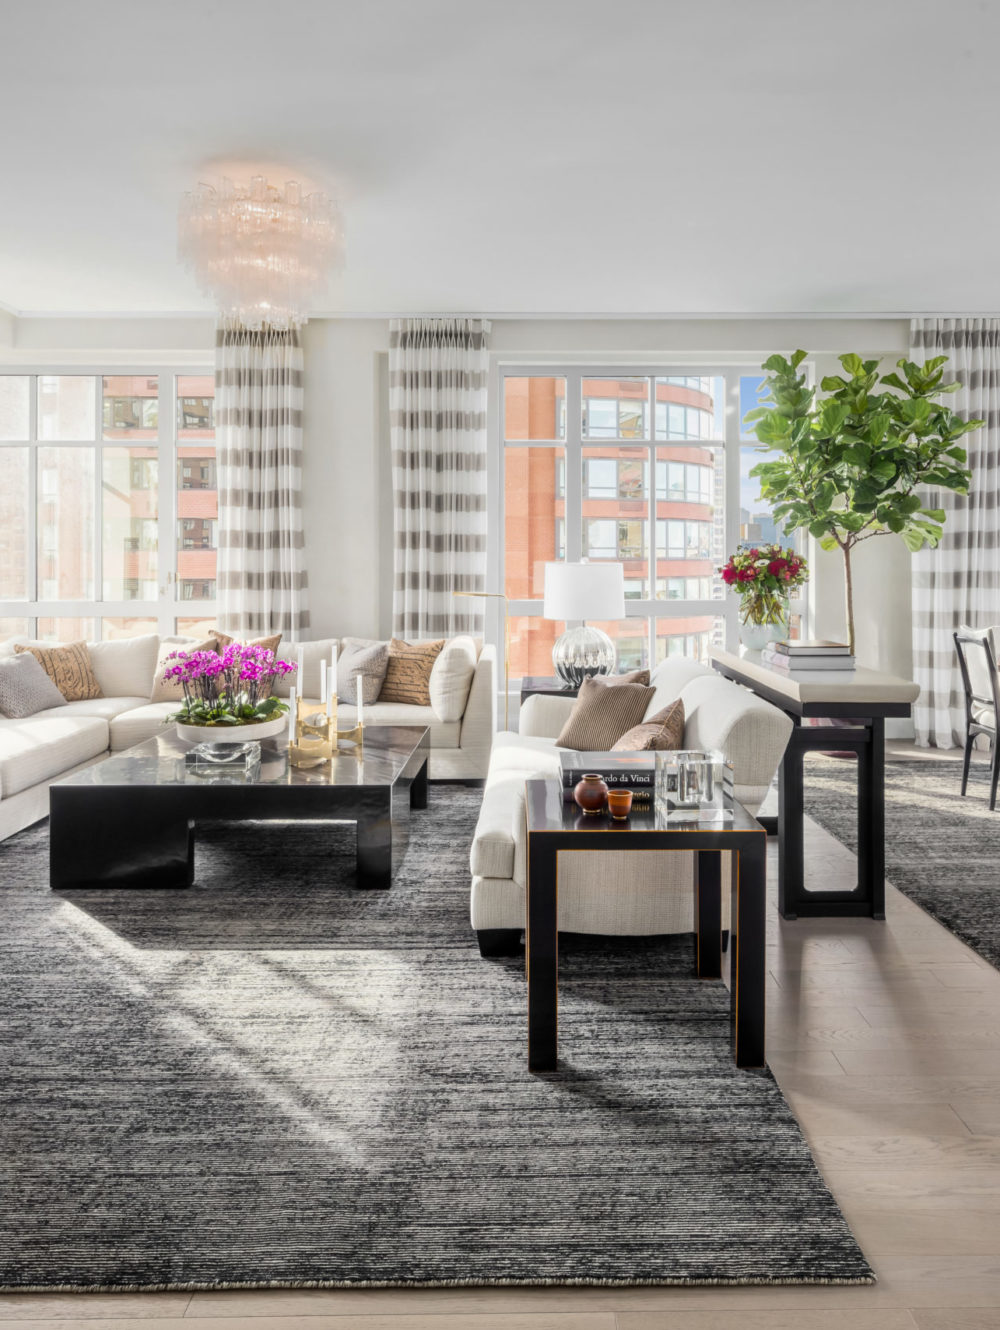 Living room in The Kent luxury condos in New York. Large open room with large windows, a large couch and black coffee table.